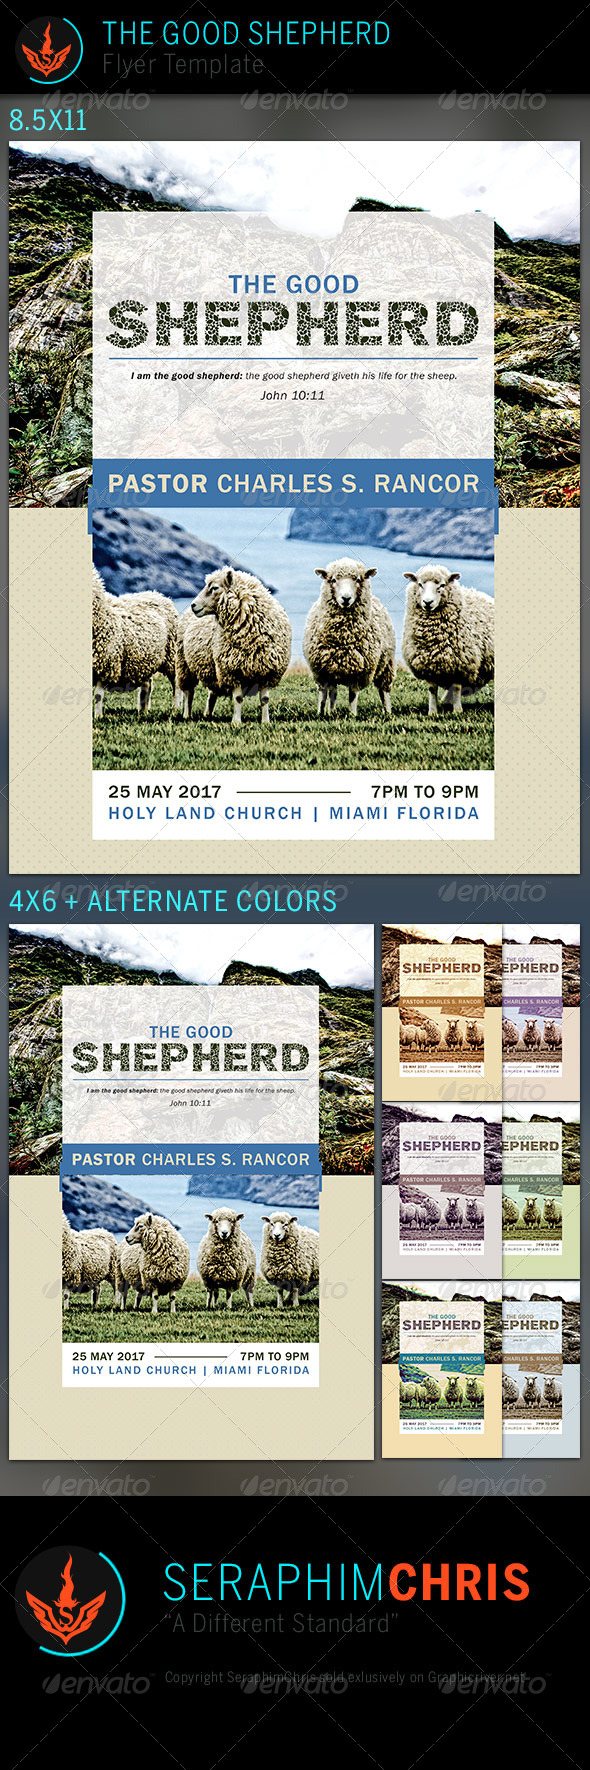 The Good Shepherd: Church Flyer Template - Church Flyers